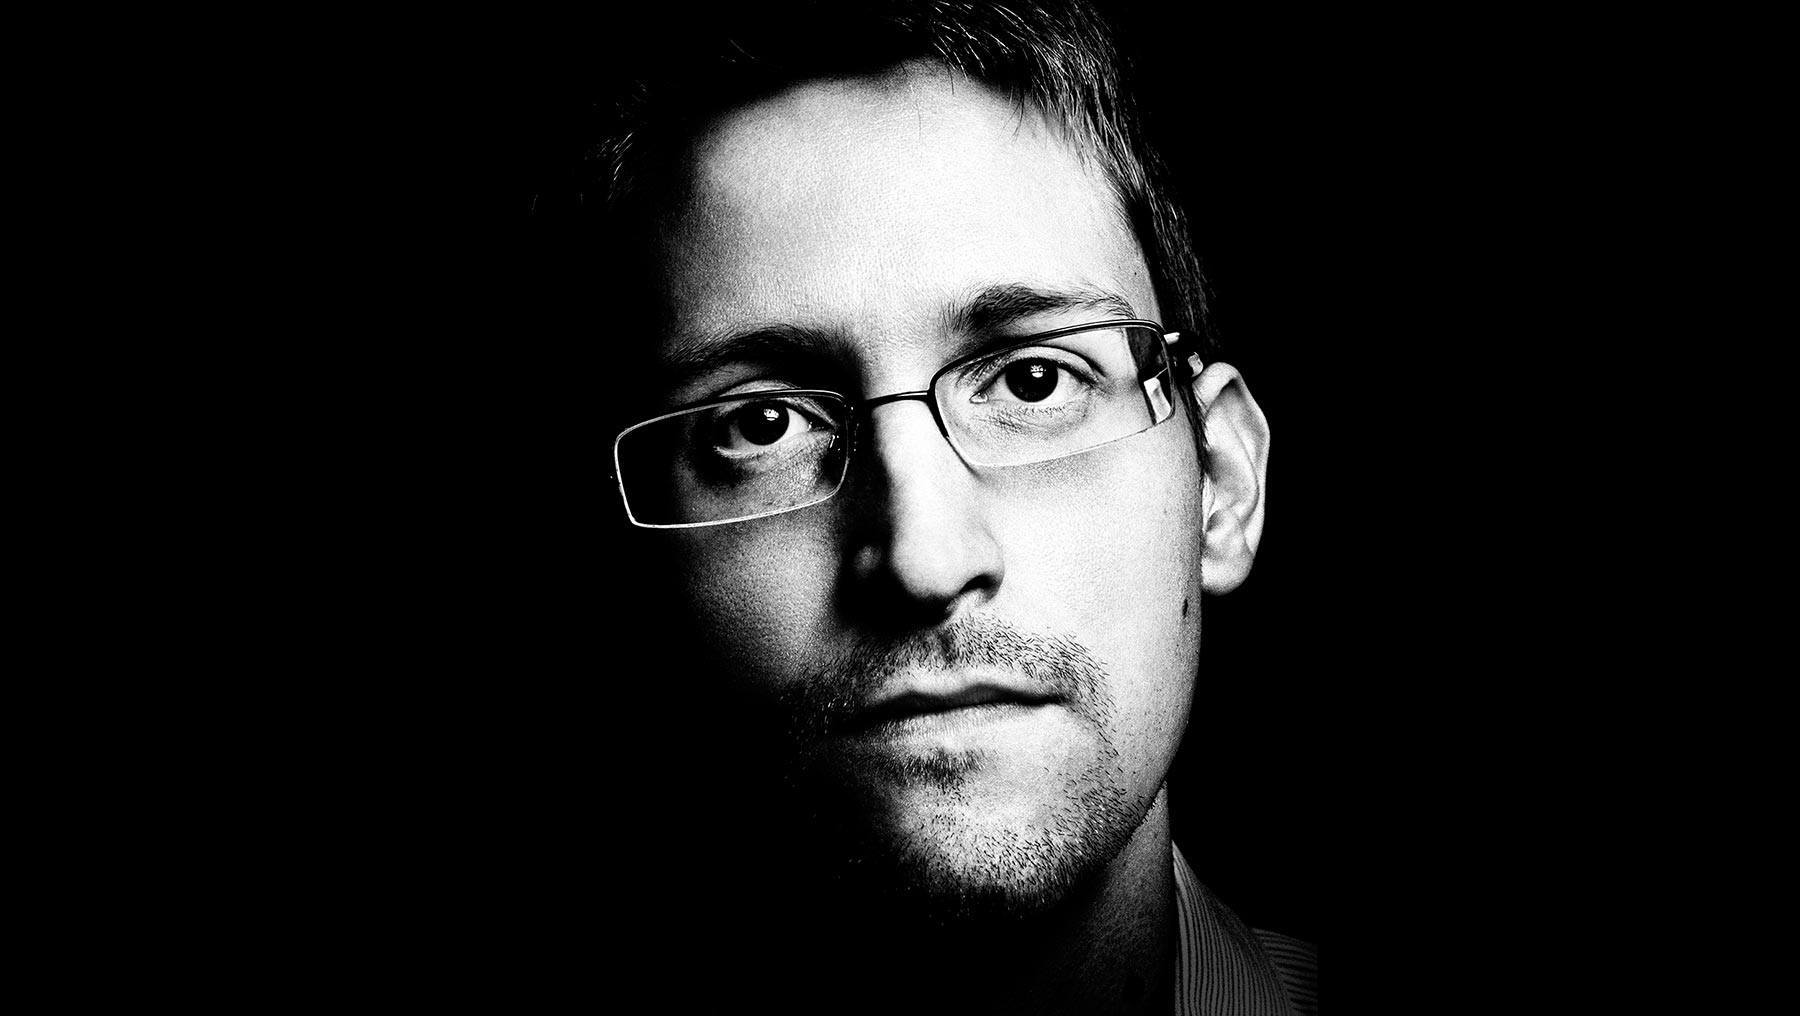 Forgetting Edward Snowden - Movie TV Tech Geeks News